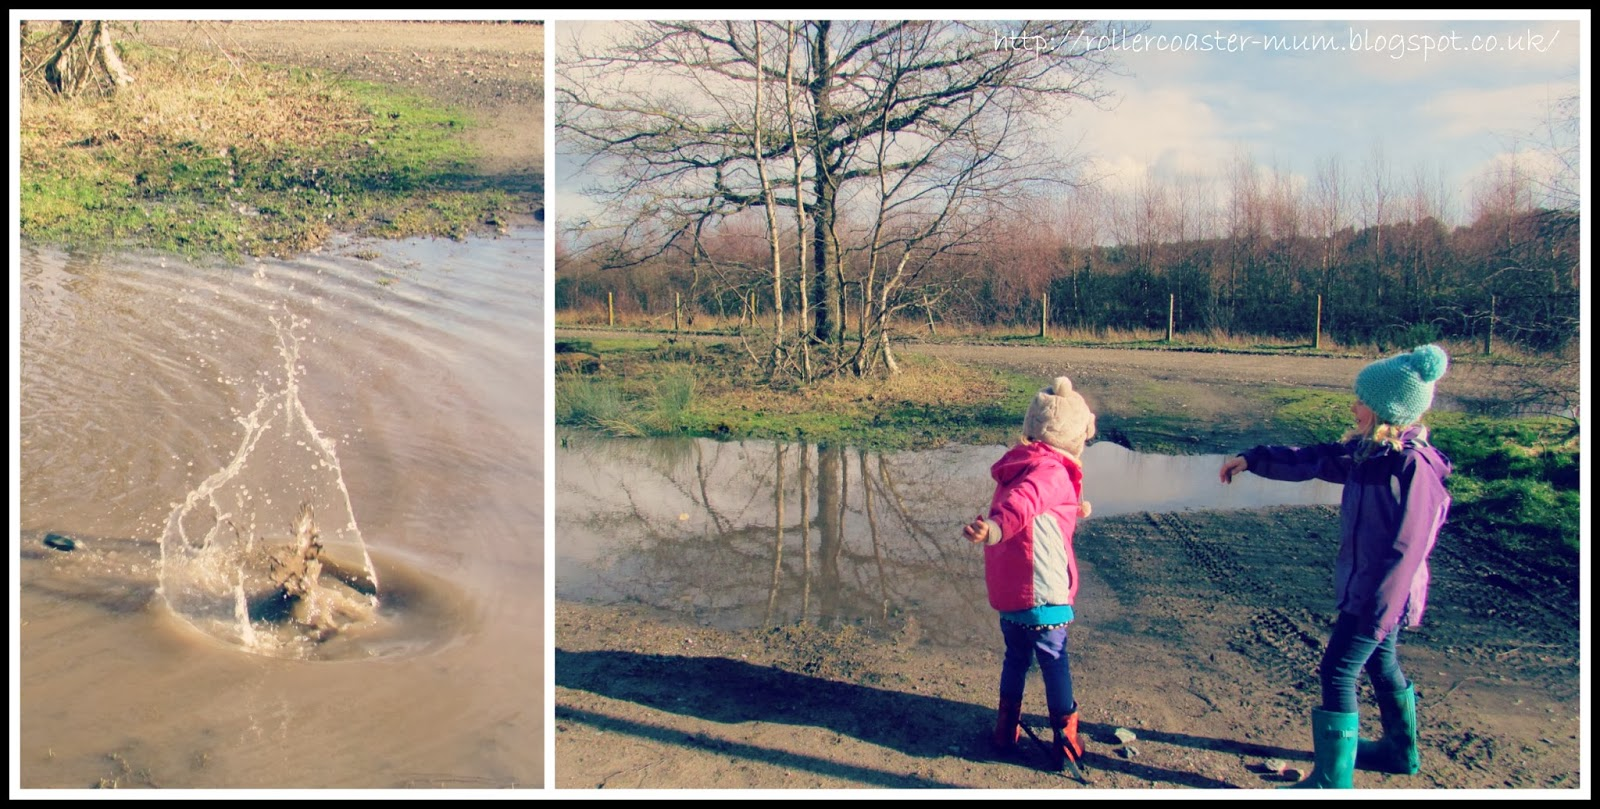 skimming stones in puddles